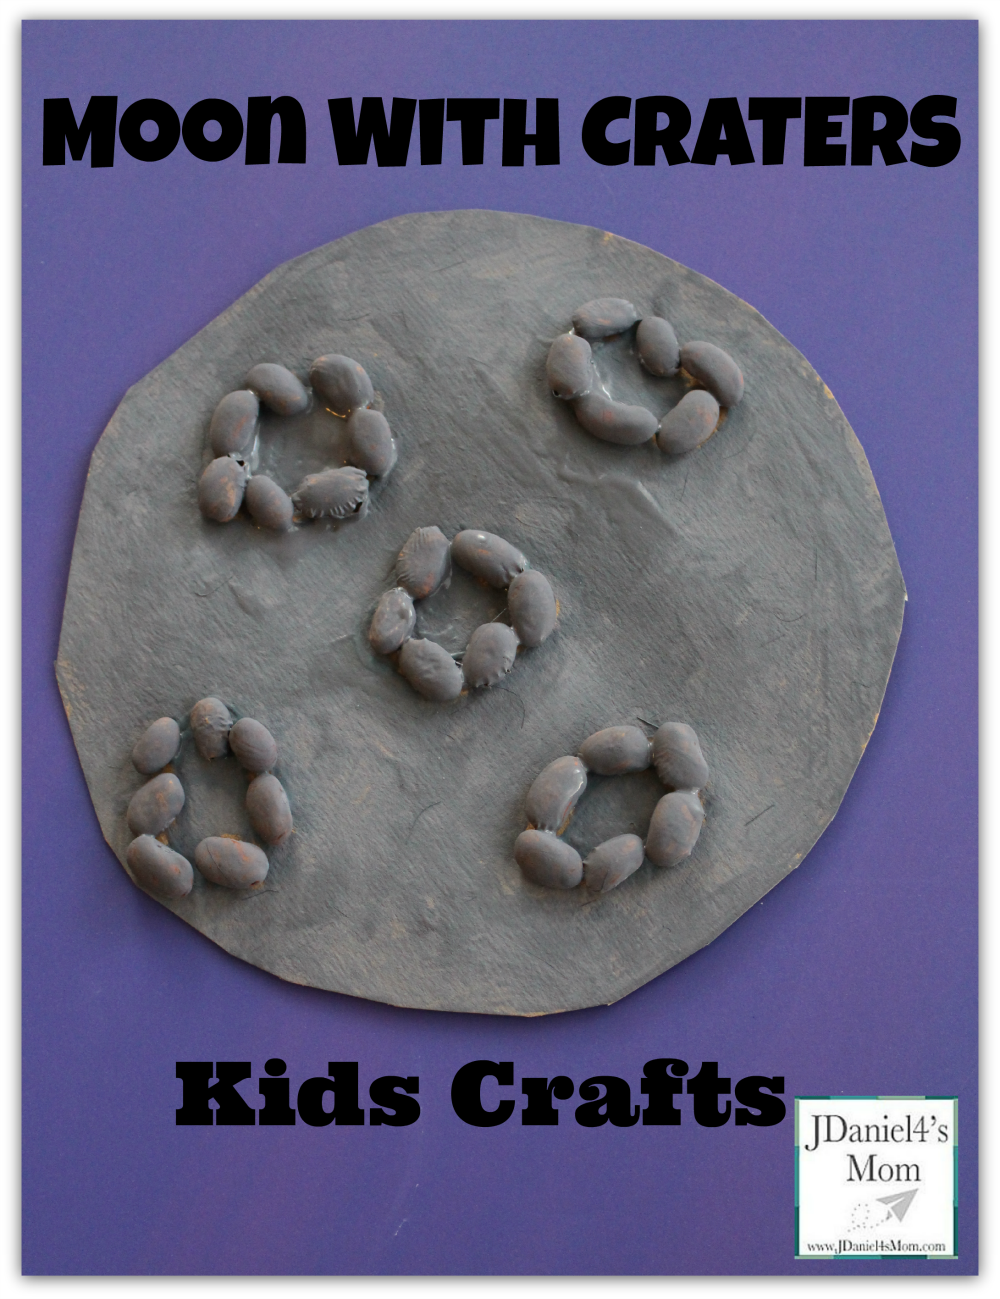 Moon with Craters Kids Crafts